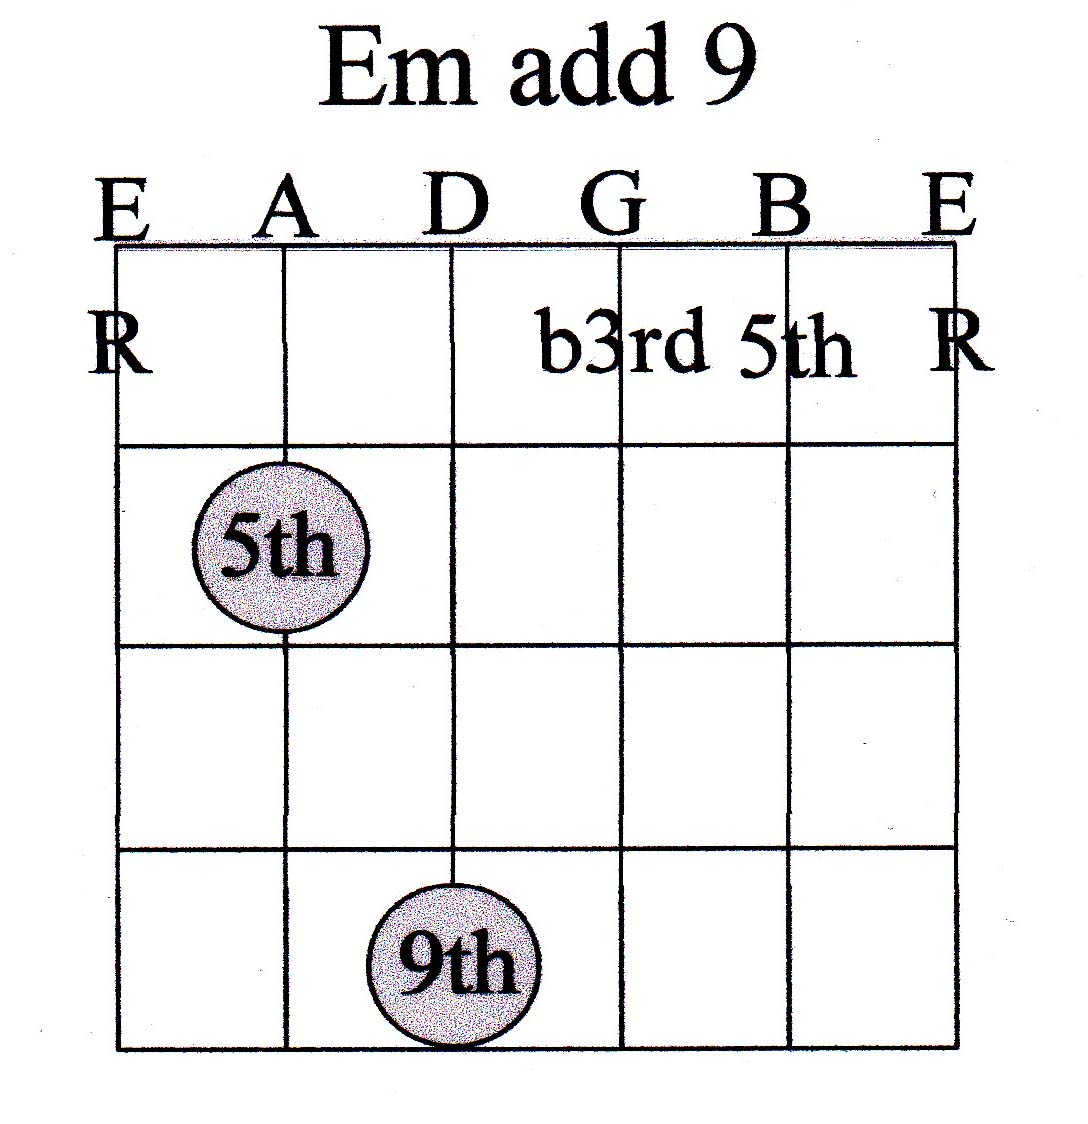 Guitar chord guide advanced marcus curtis music 20 chord hexwebz Image collections